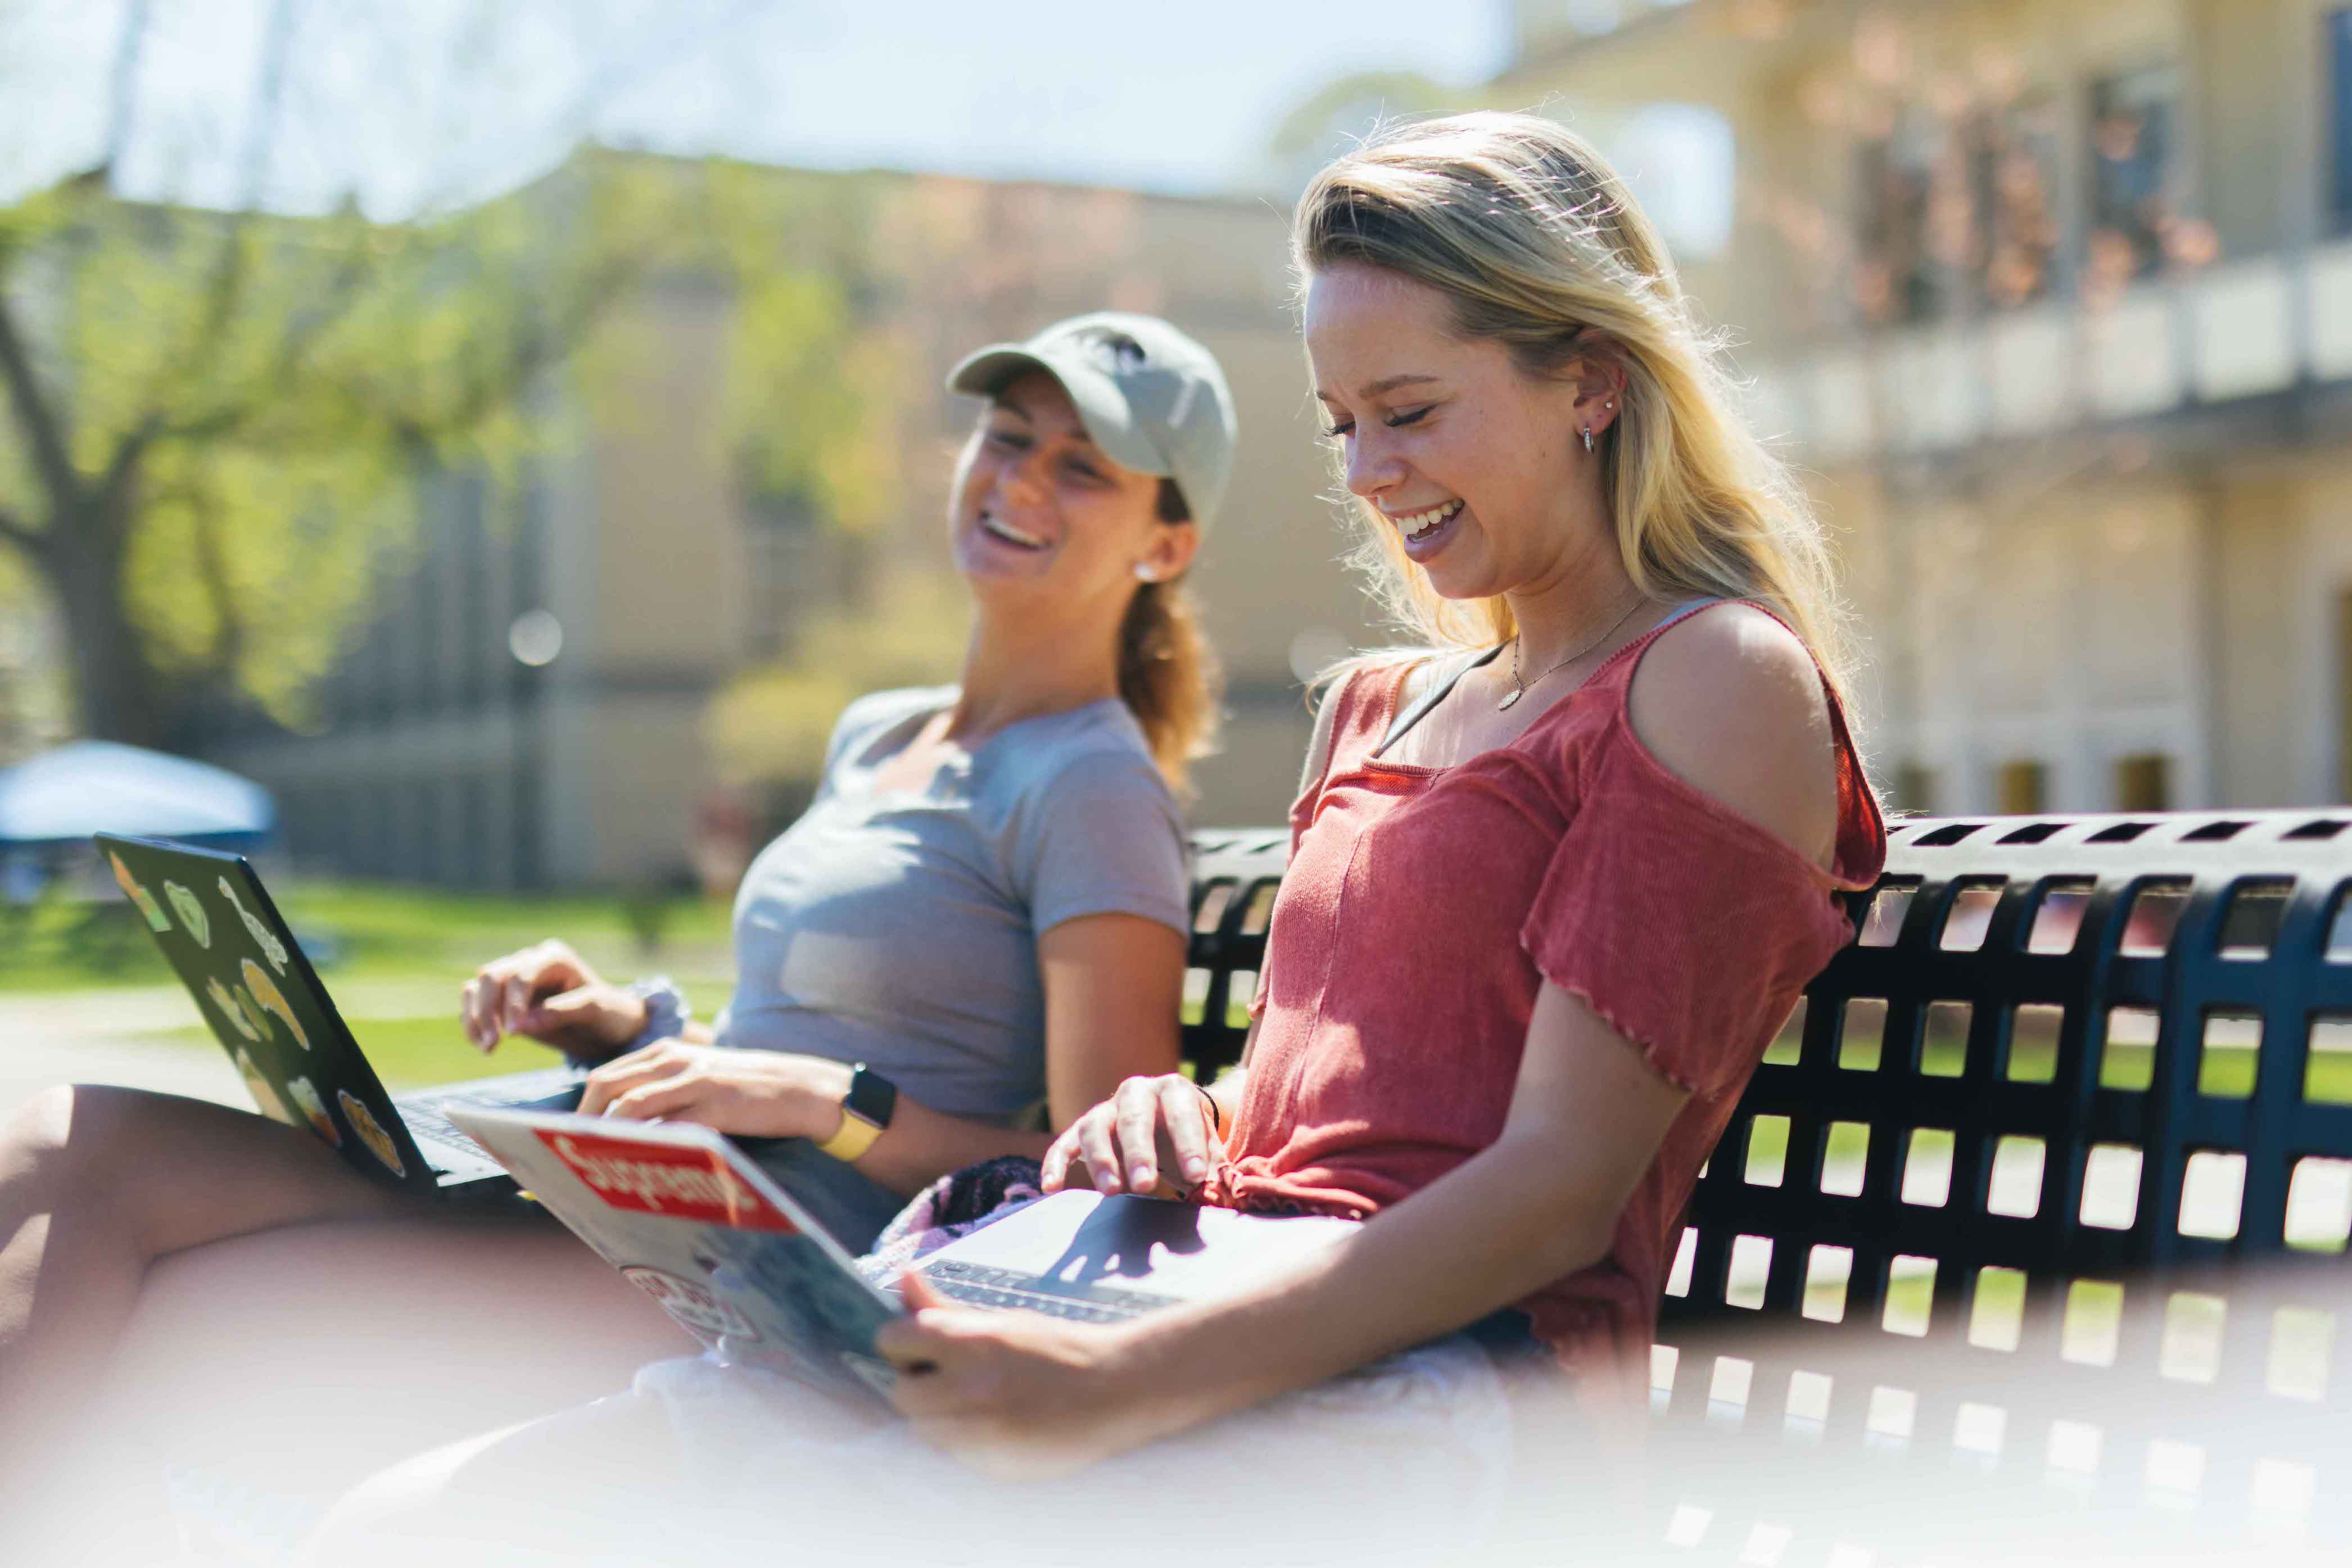 two females laughing outside on a bench while using laptops